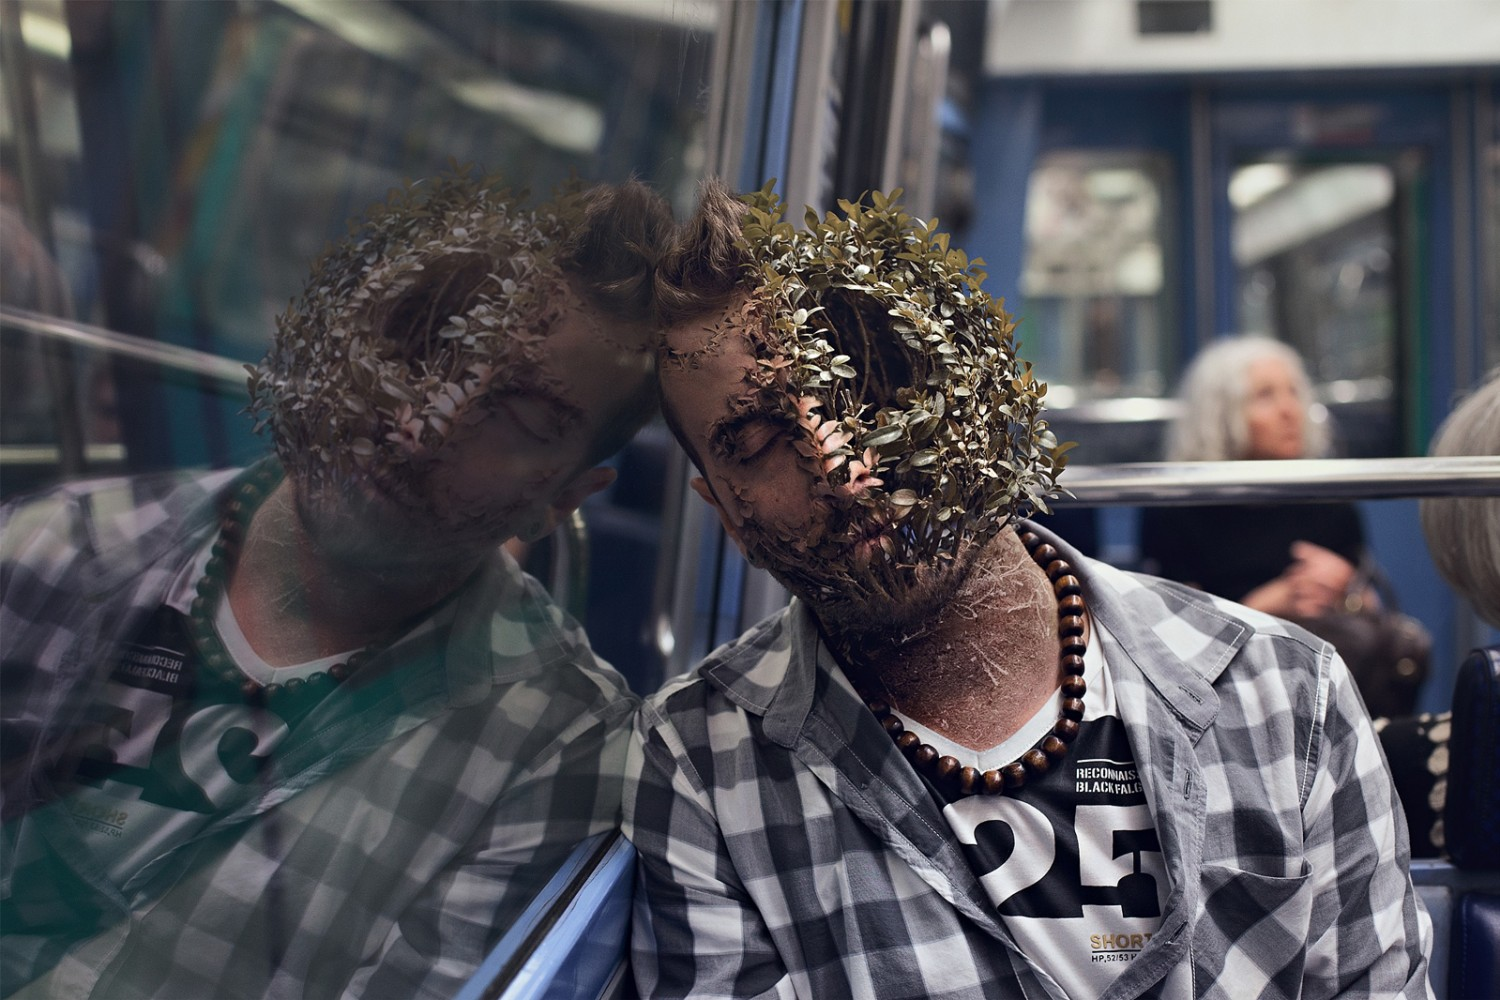 People Become Plants in These Intense Photo Manipulations